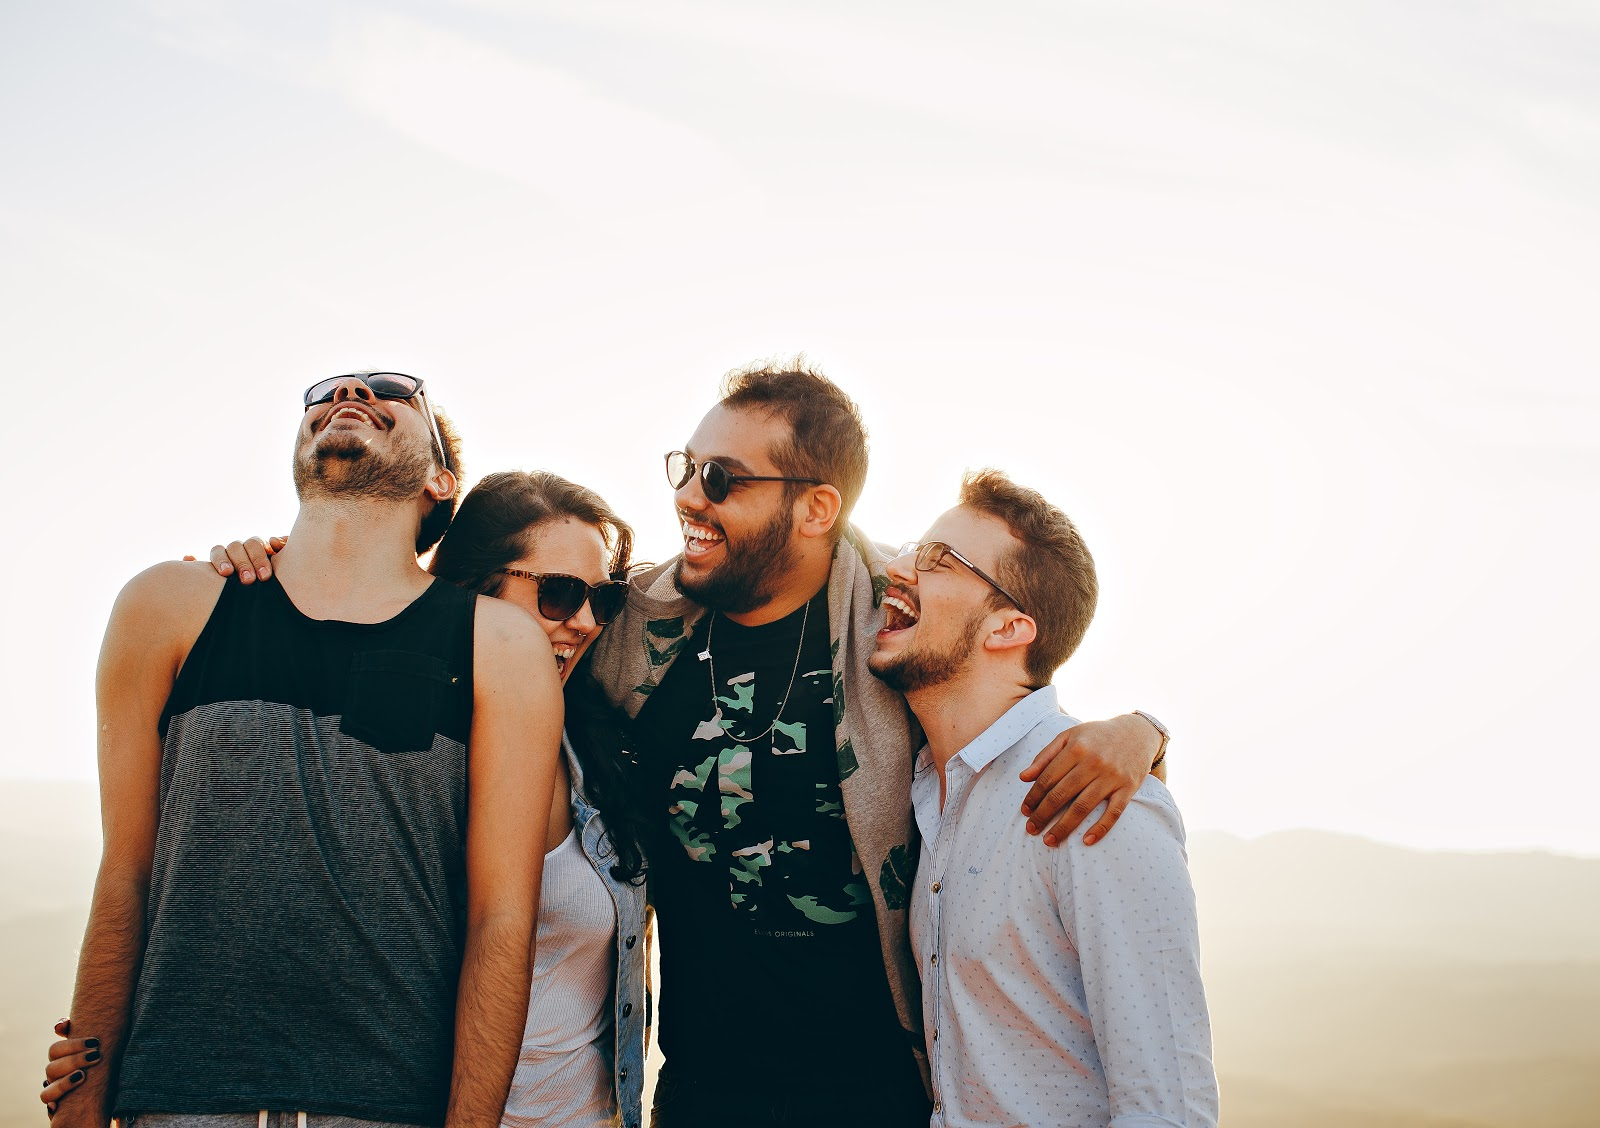 A group of people with sunglasses on